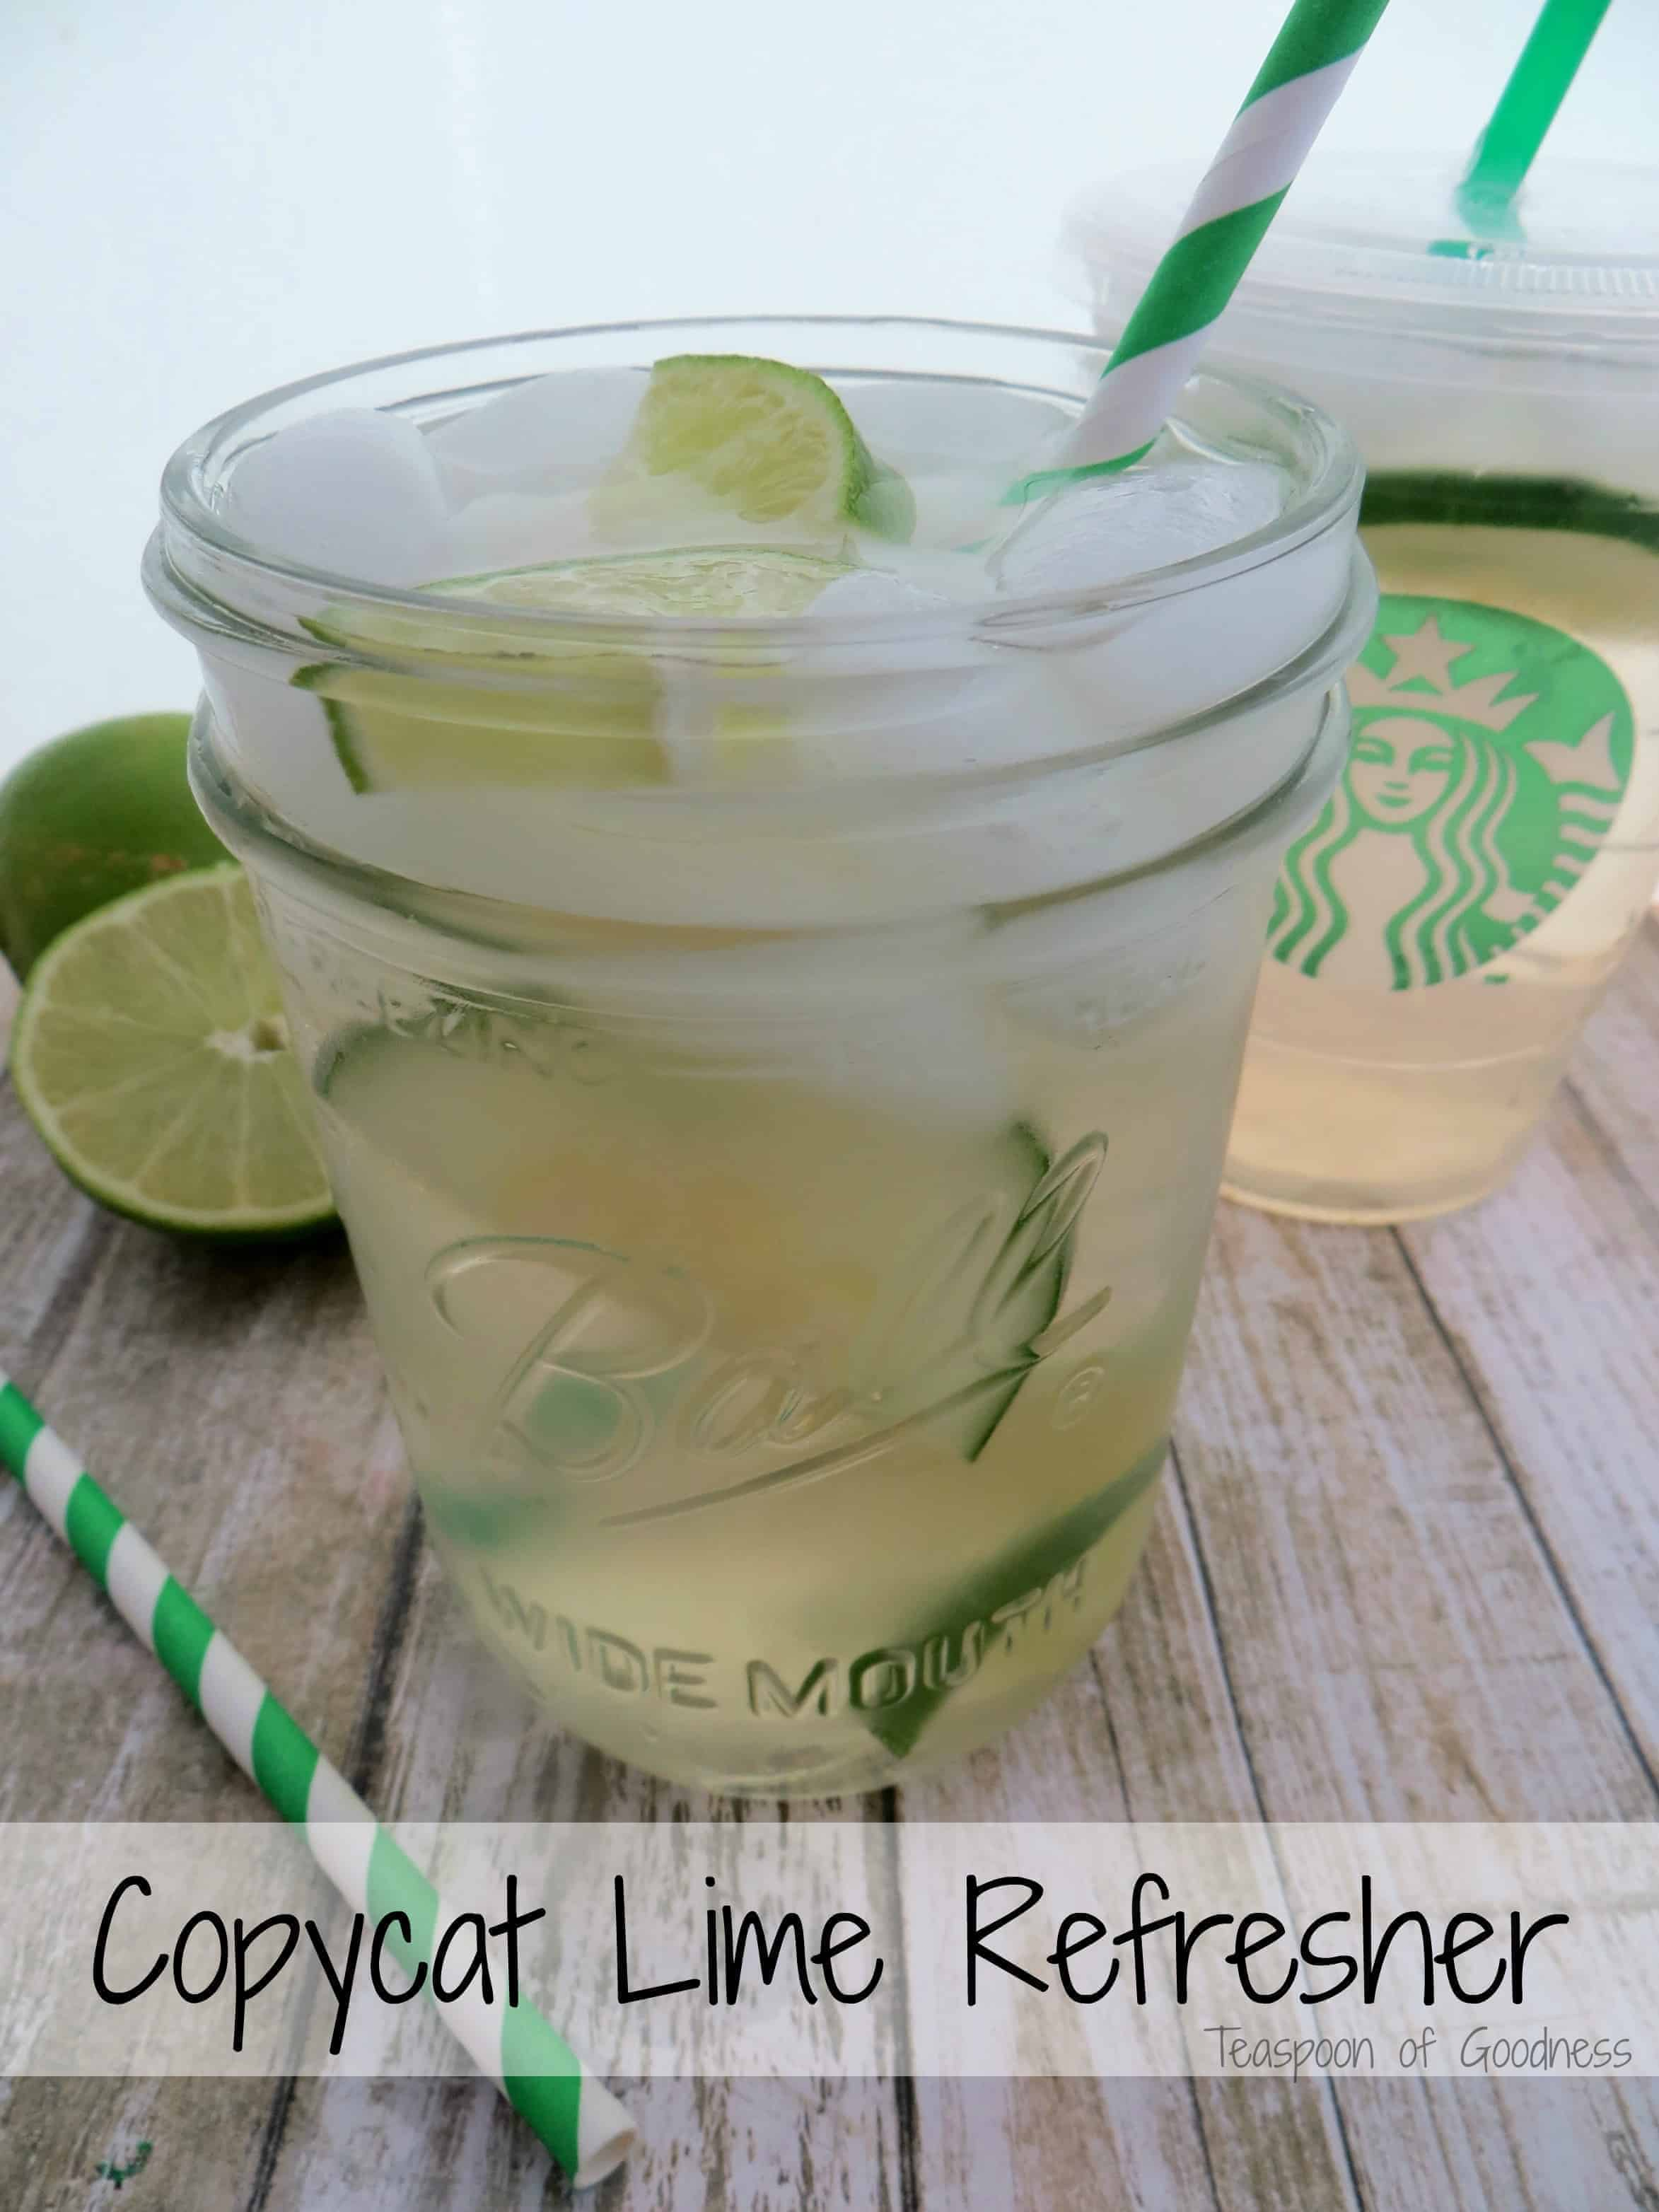 Starbucks Copycat Lime Refresher